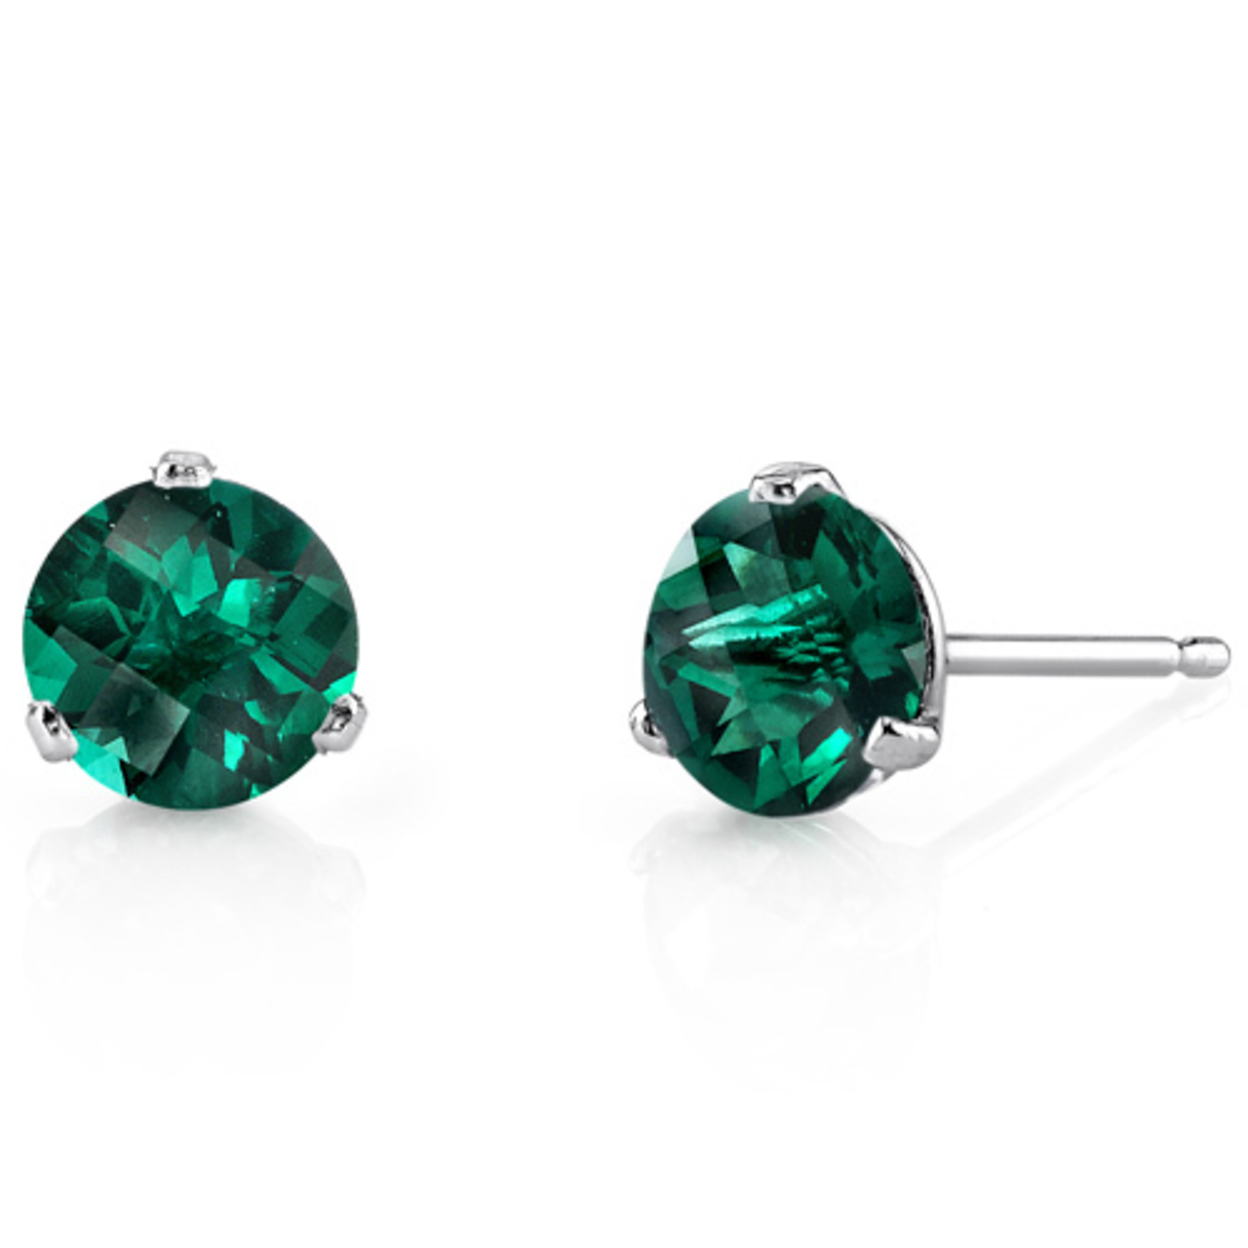 14 Kt White Gold Martini Style Round Cut 1.50 Carats Created Emerald Stud Earrings